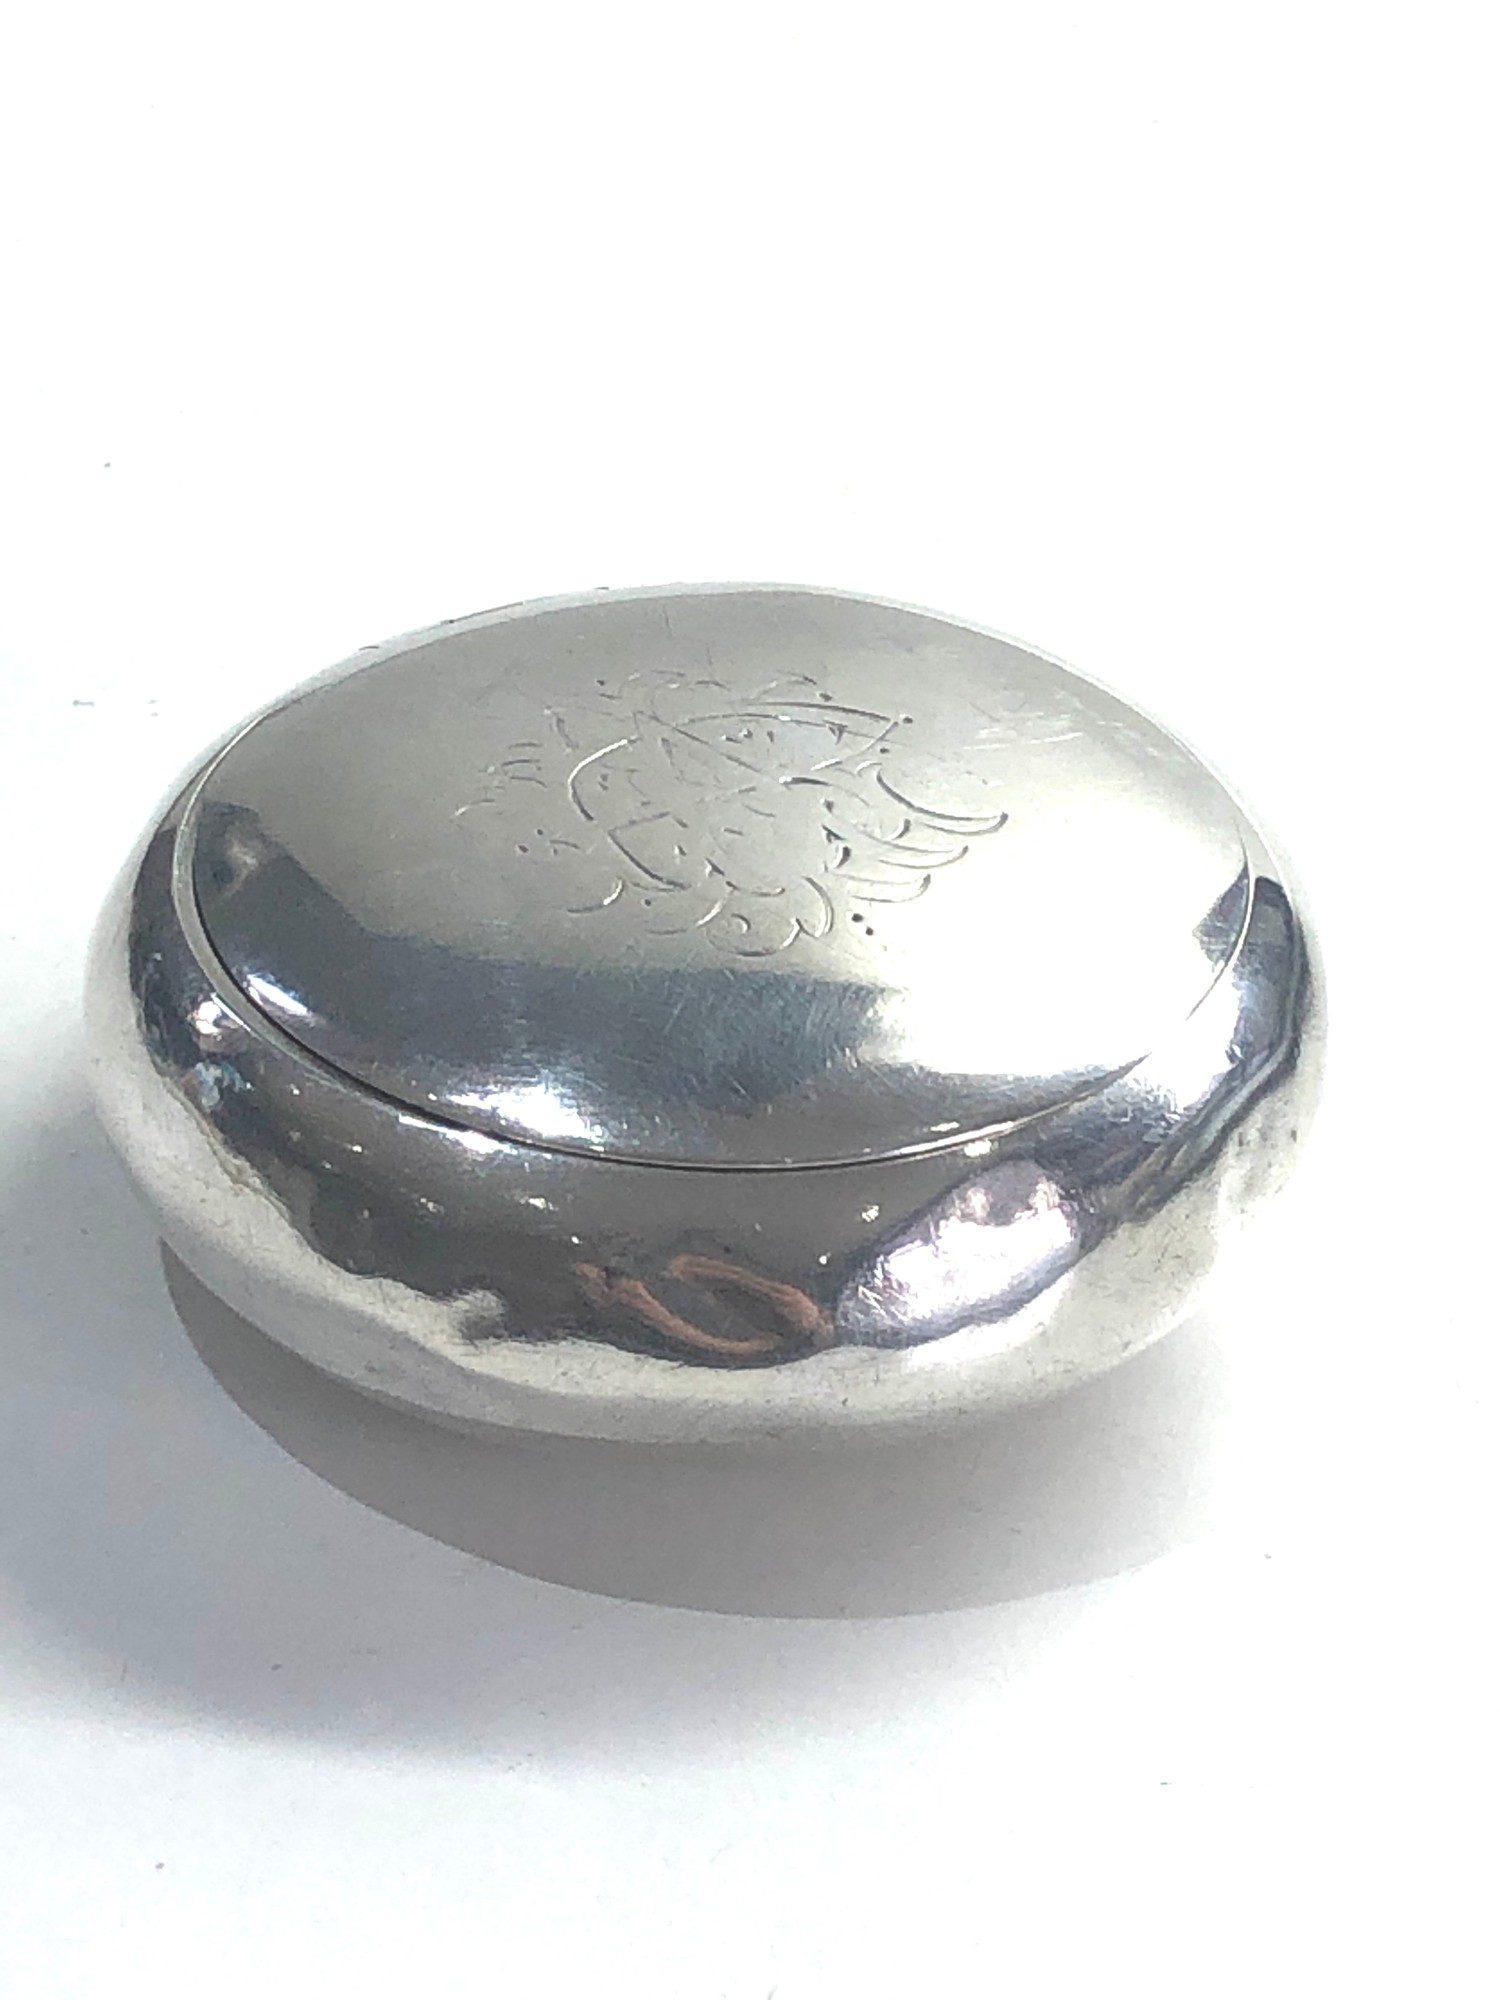 Antique silver tobacco box Birmingham silver hallmarks age related dents please see images for - Image 4 of 7